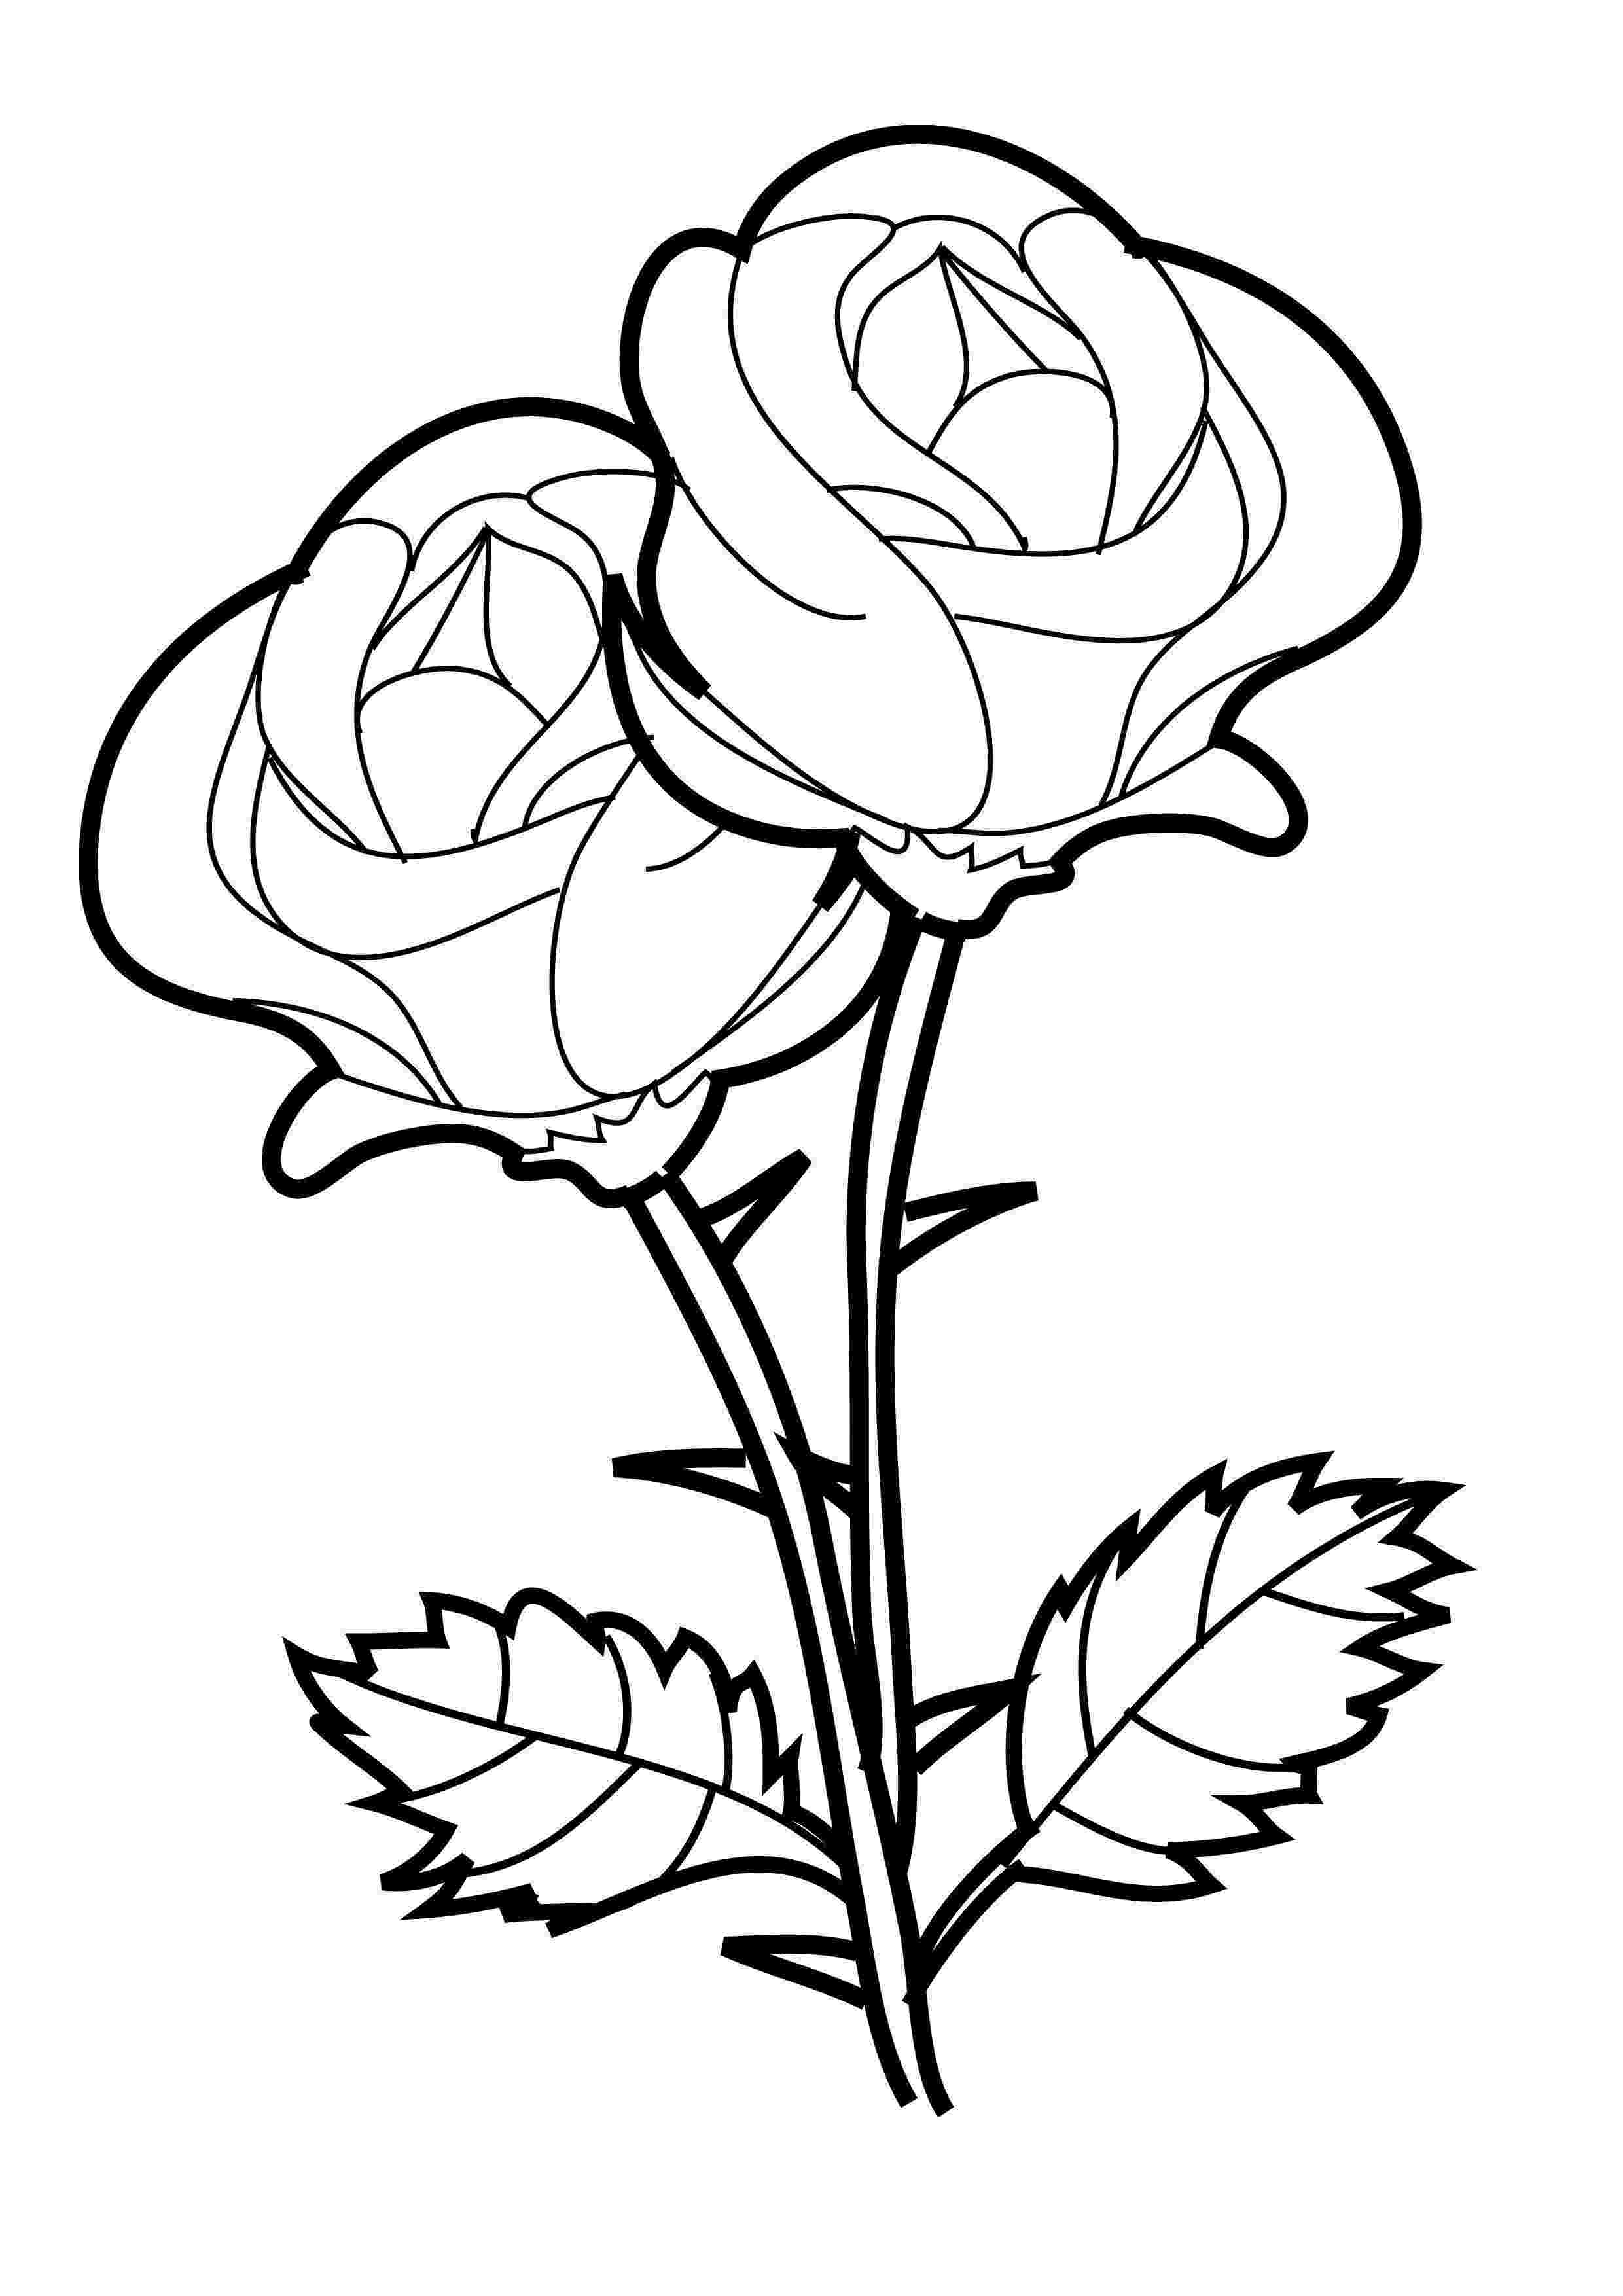 rose coloring sheets free printable roses coloring pages for kids rose sheets coloring